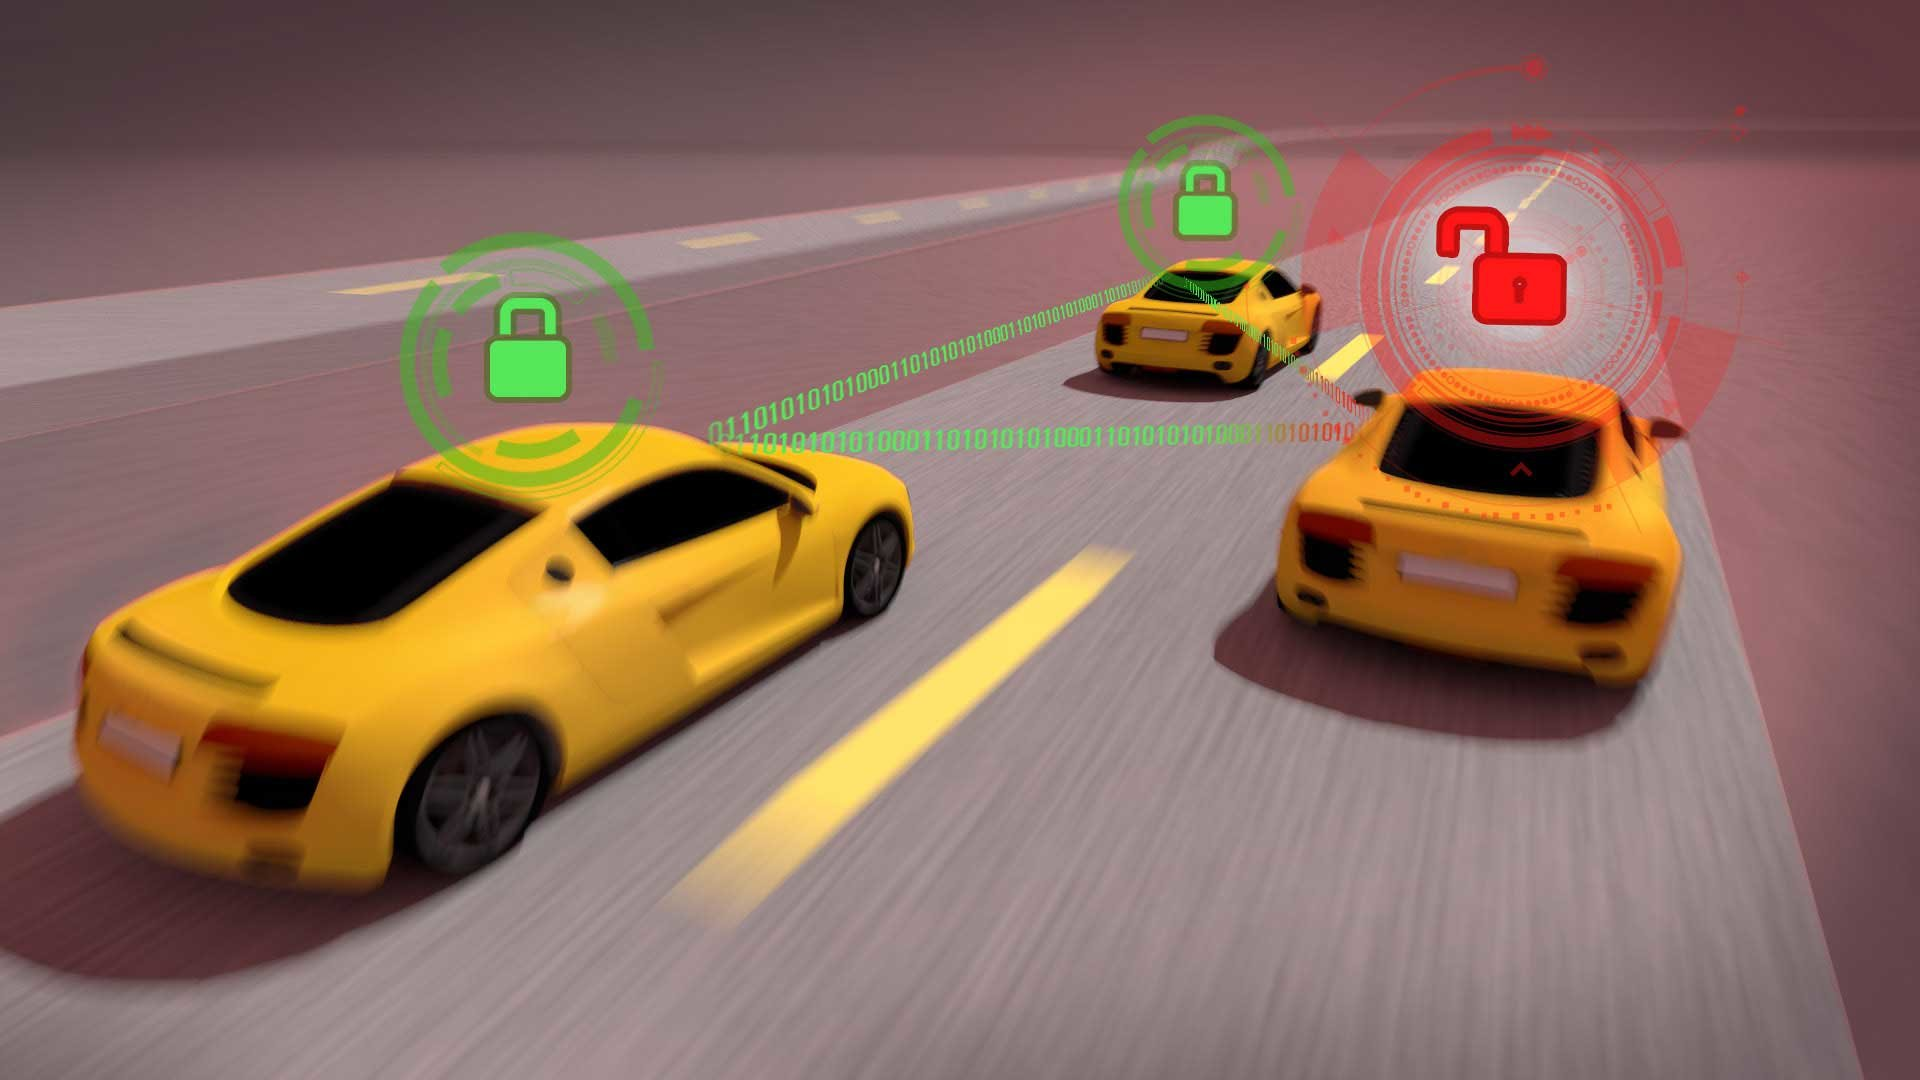 When Will Self Driving Cars Be Safe Cyber Security